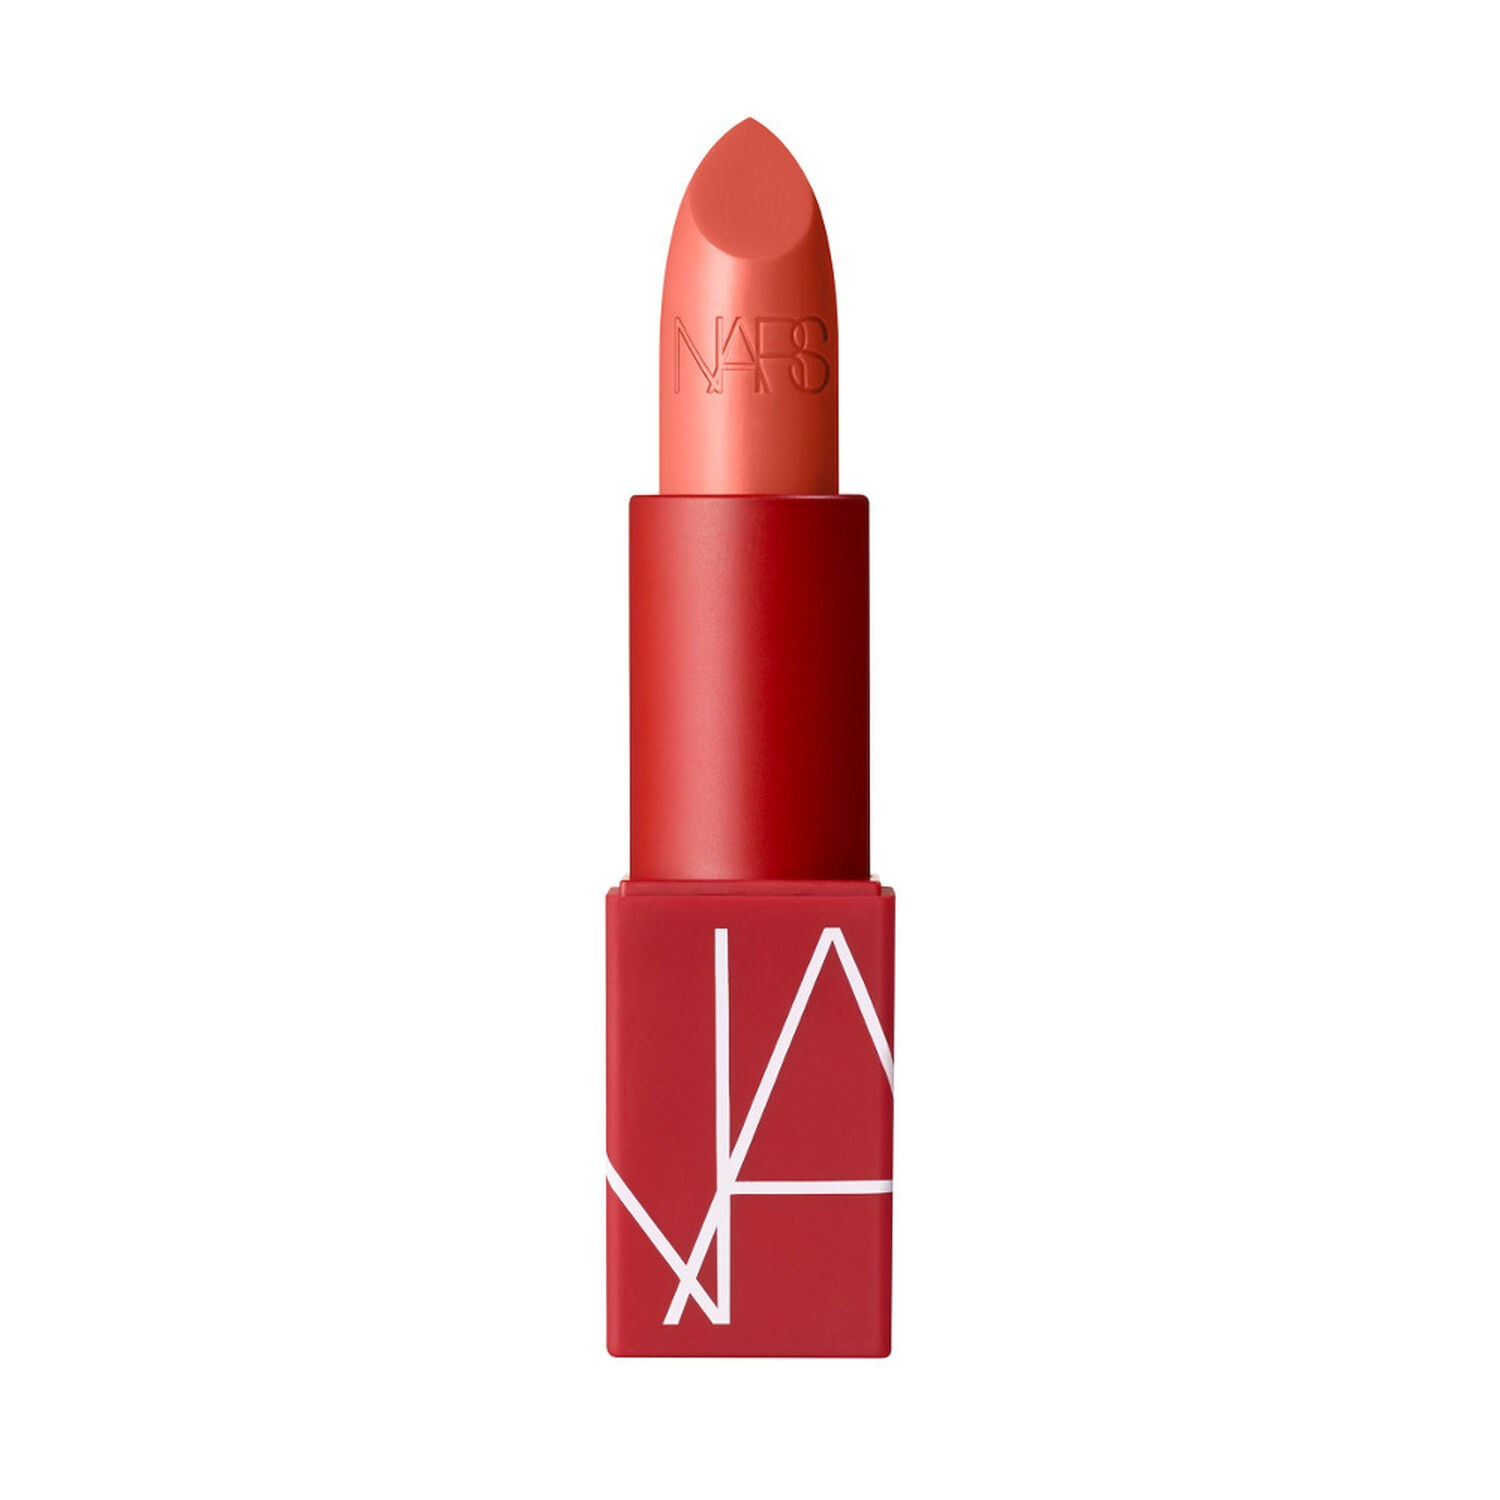 EXCLUSIVE LIPSTICK – NEW FORMULA 1